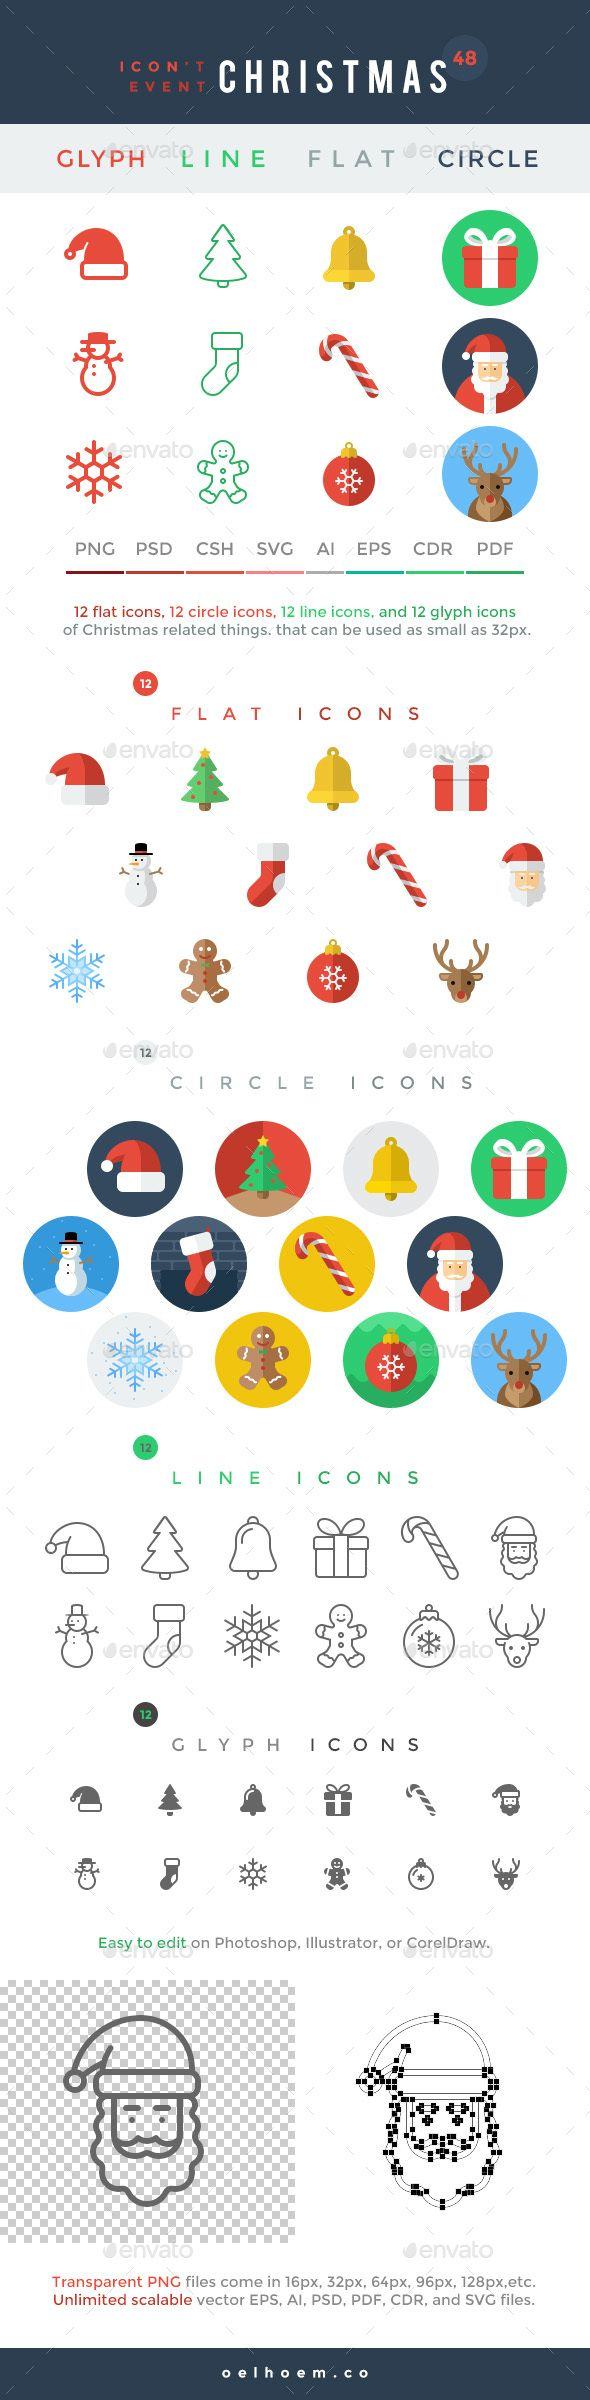 Icon't Event  48 Christmas Icons — Photoshop PSD #reindeer #flat • Download ➝ https://graphicriver.net/item/icont-event-48-christmas-icons/19080692?ref=pxcr